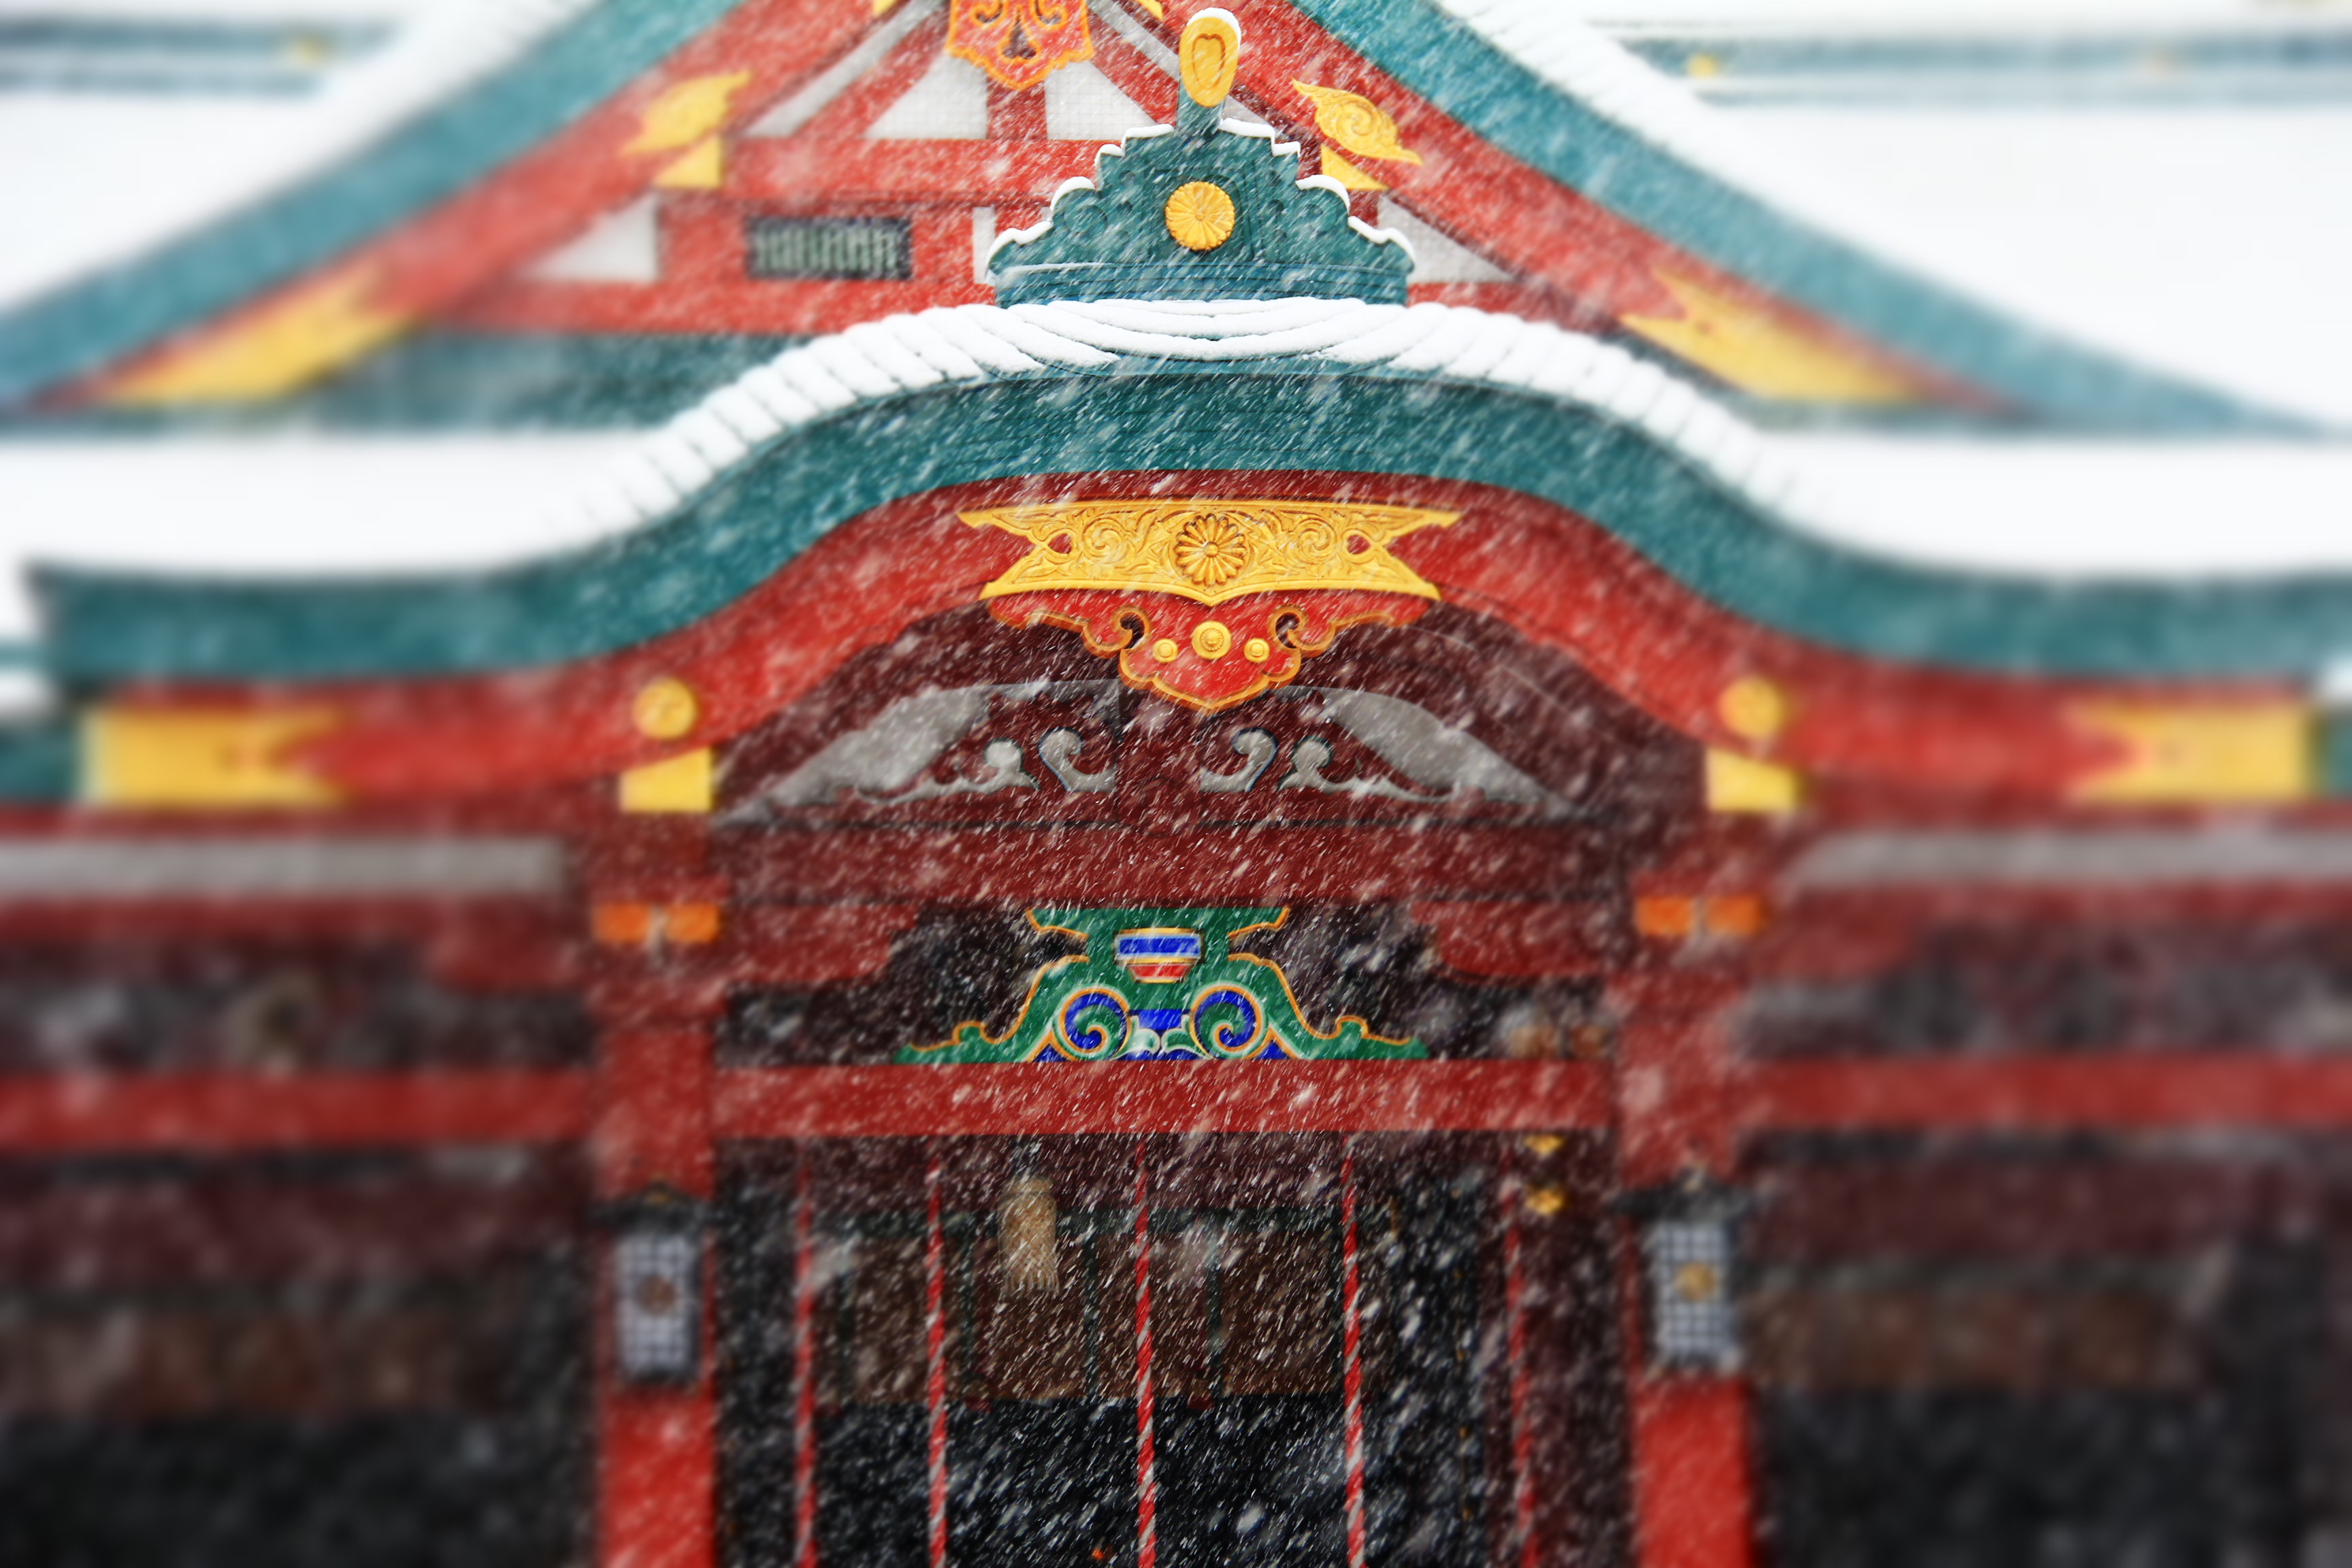 神社 吹雪 shrine and blizzard